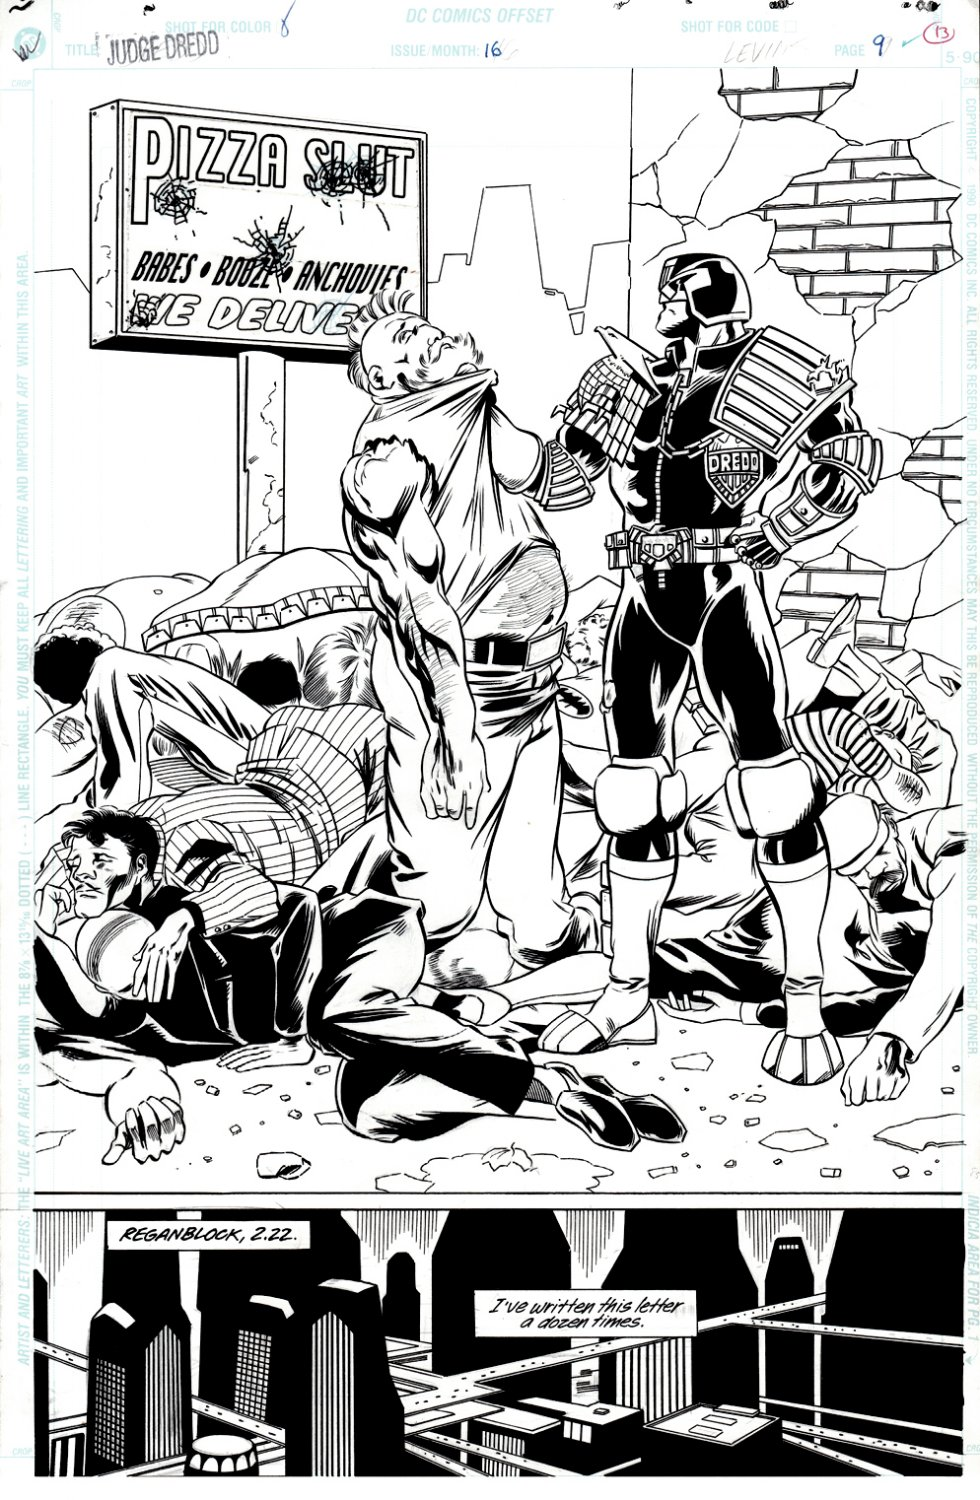 Judge Dredd 16 Splash SOLD LIVE ON 'DUELING DEALERS PRO-AM' EPISODE #7 PODCAST ON 9-14-2021 (RE-WATCH THIS FUNNY ART SELLING SHOW HERE)